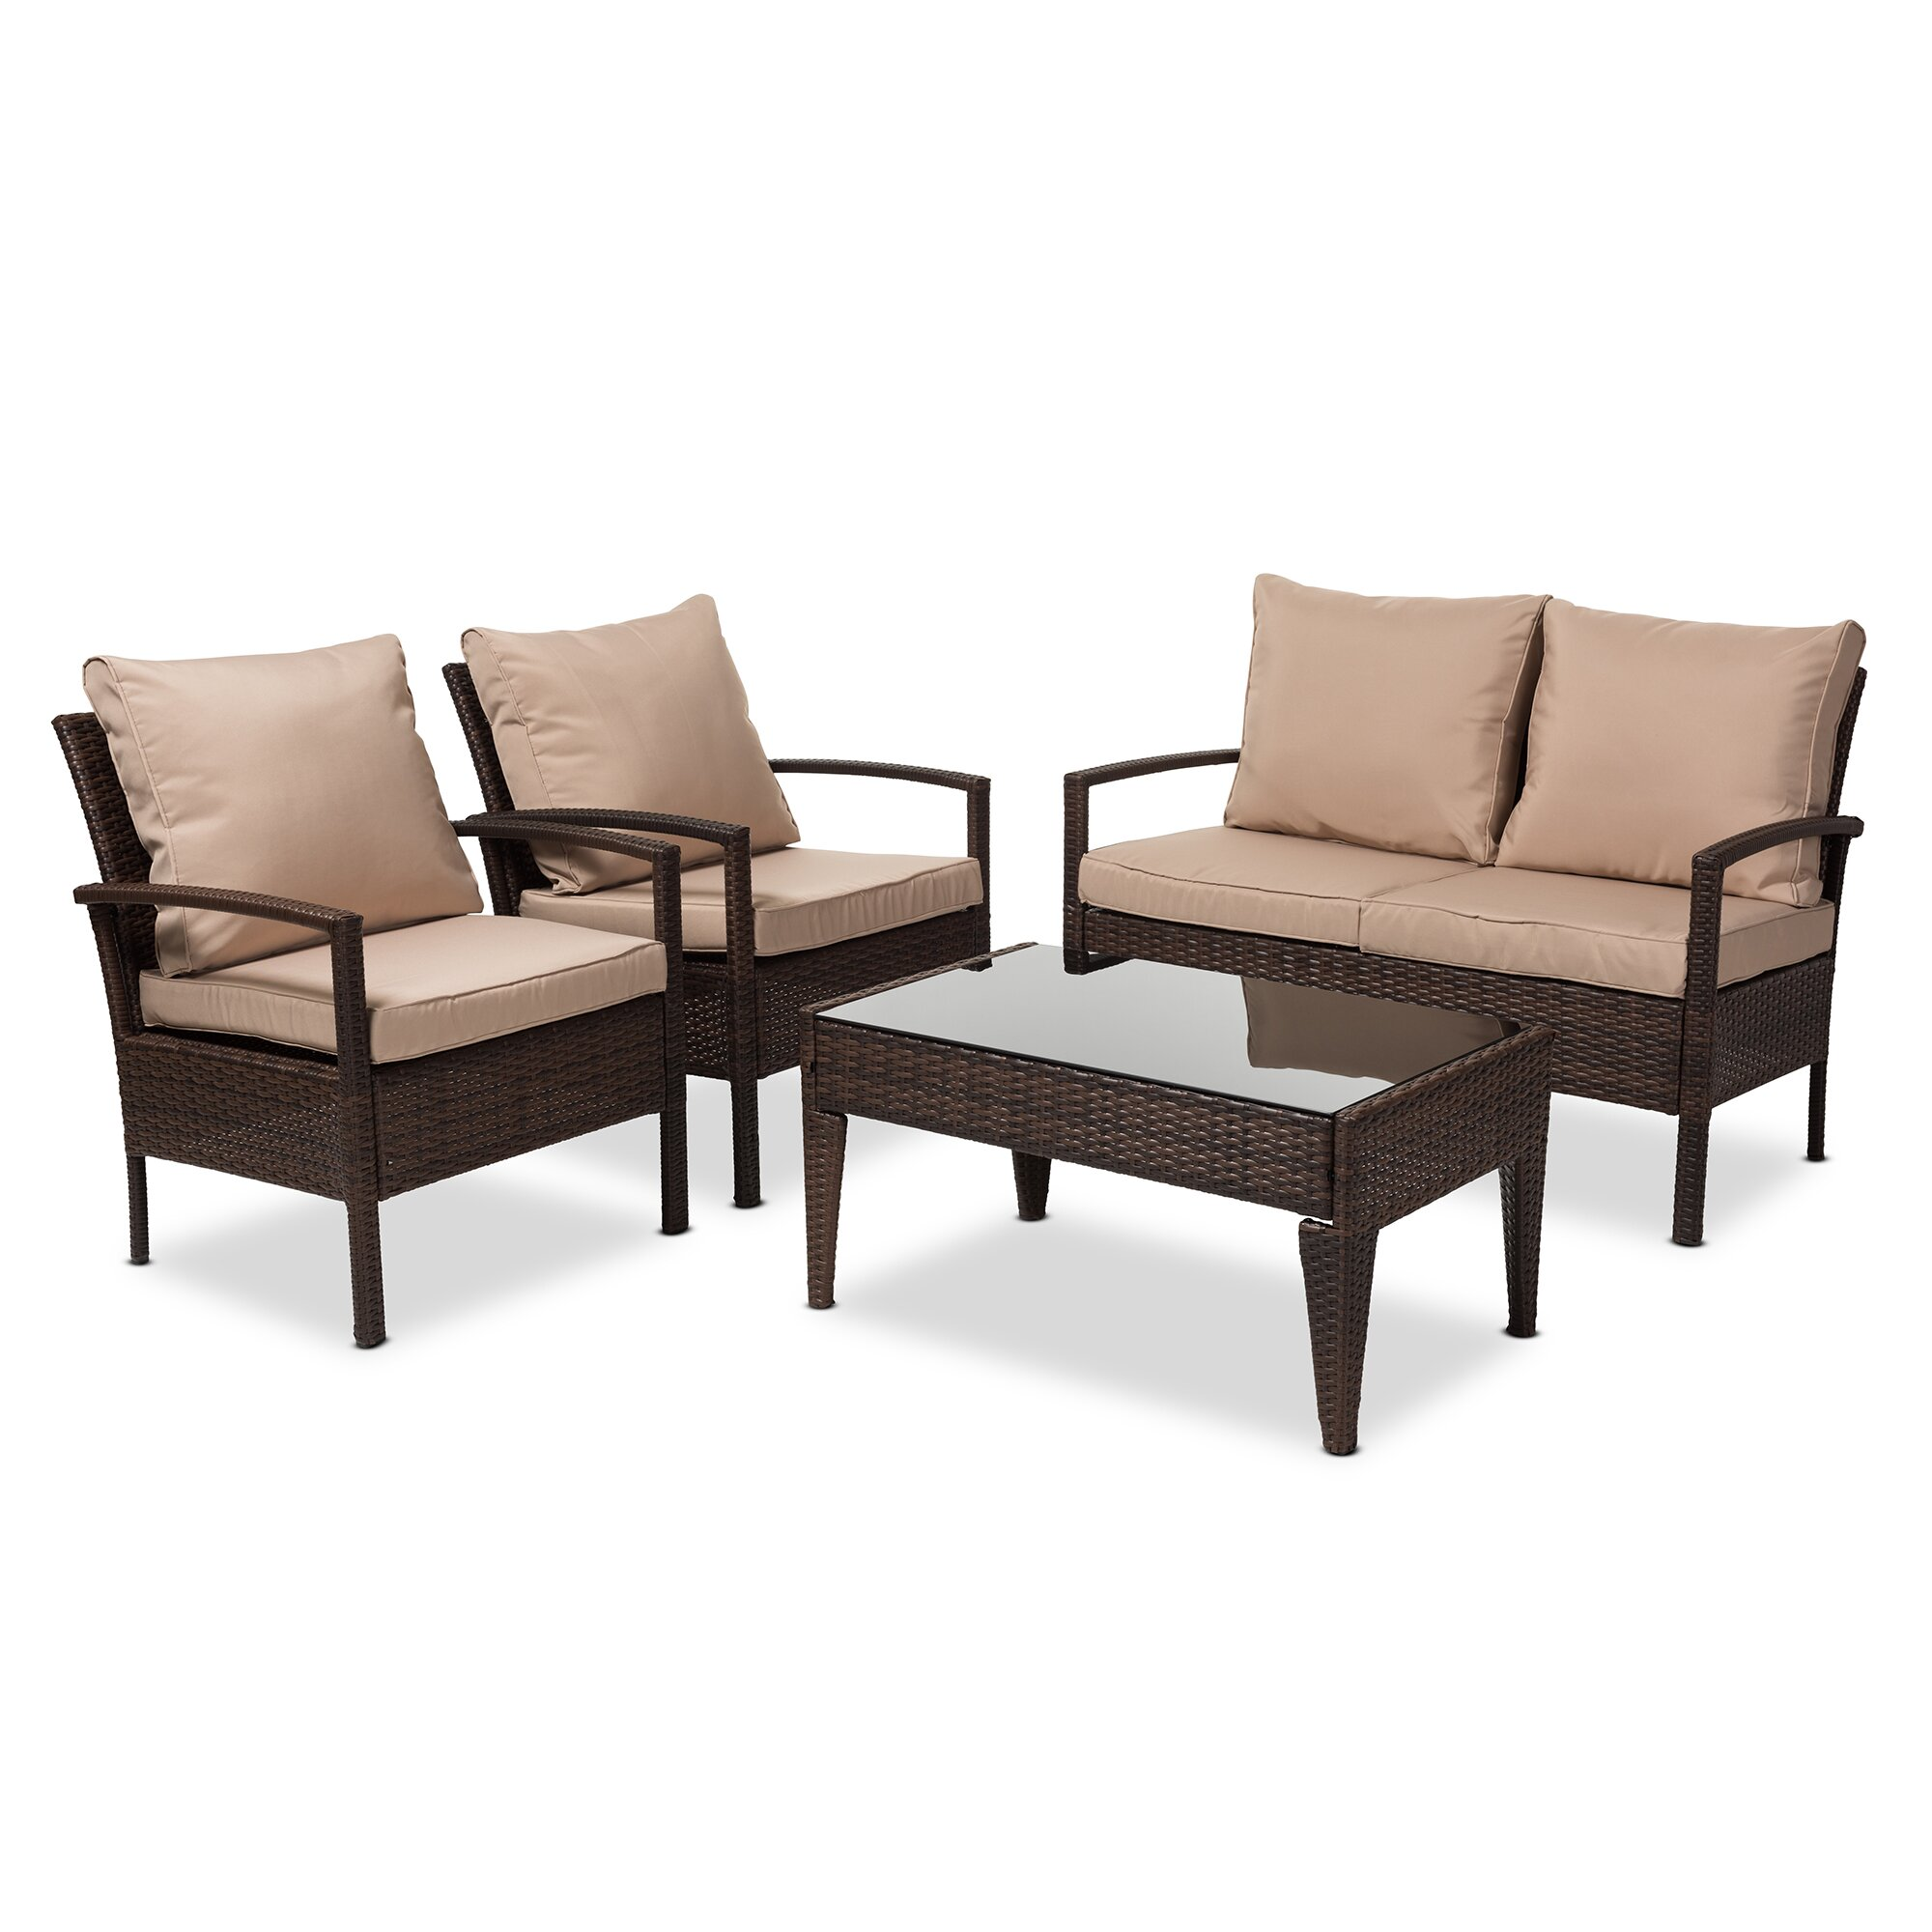 Bayou Breeze Dessie 4 Piece Rattan Sofa Set With Cushions